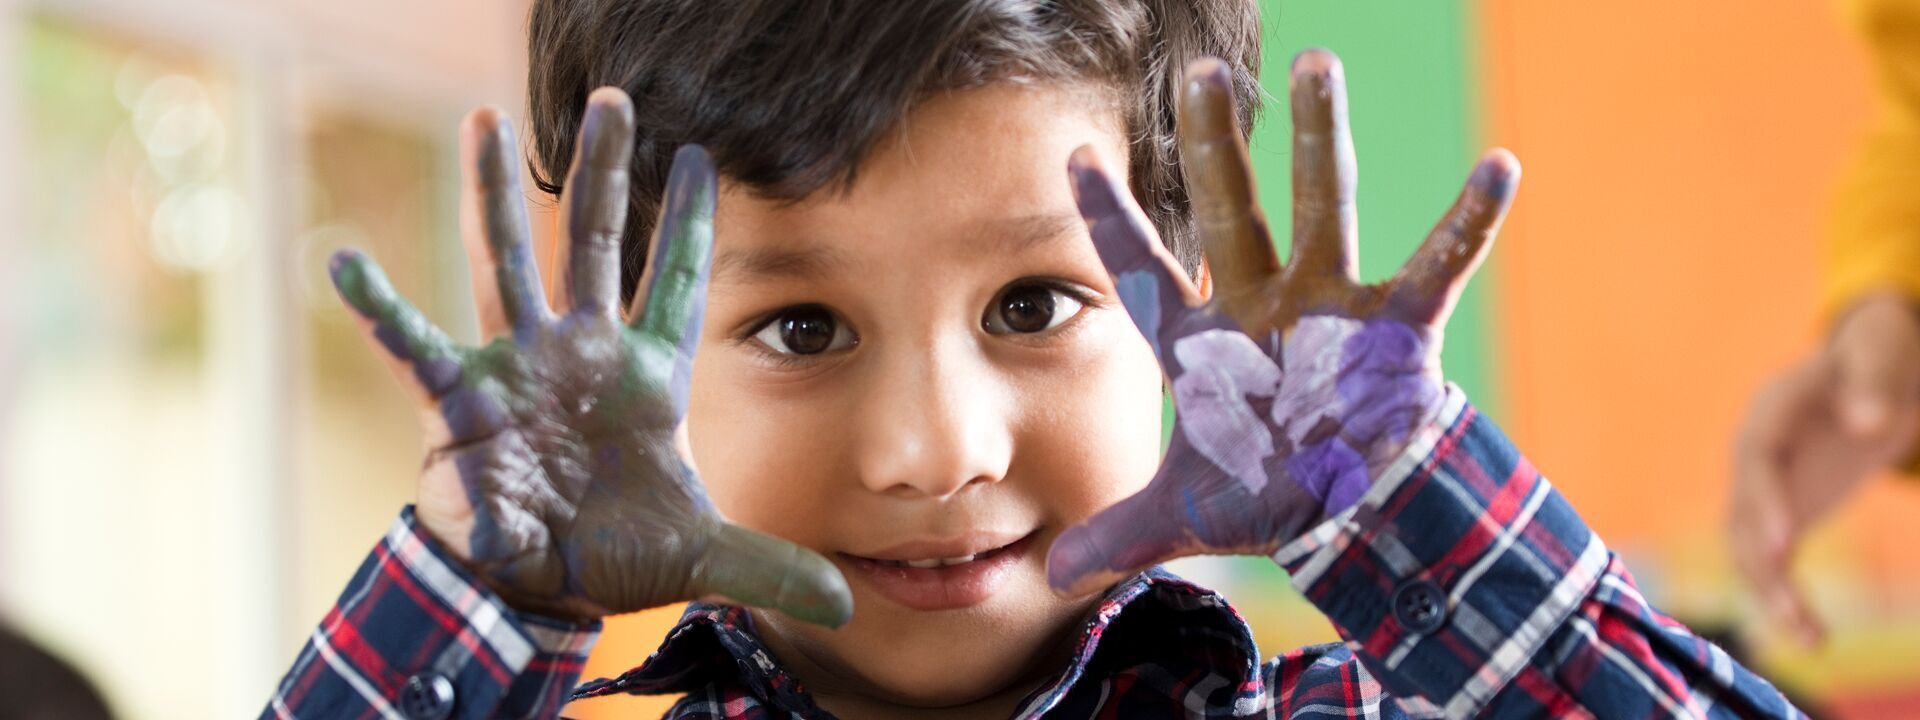 Preschool boy showing his painted palm of hands